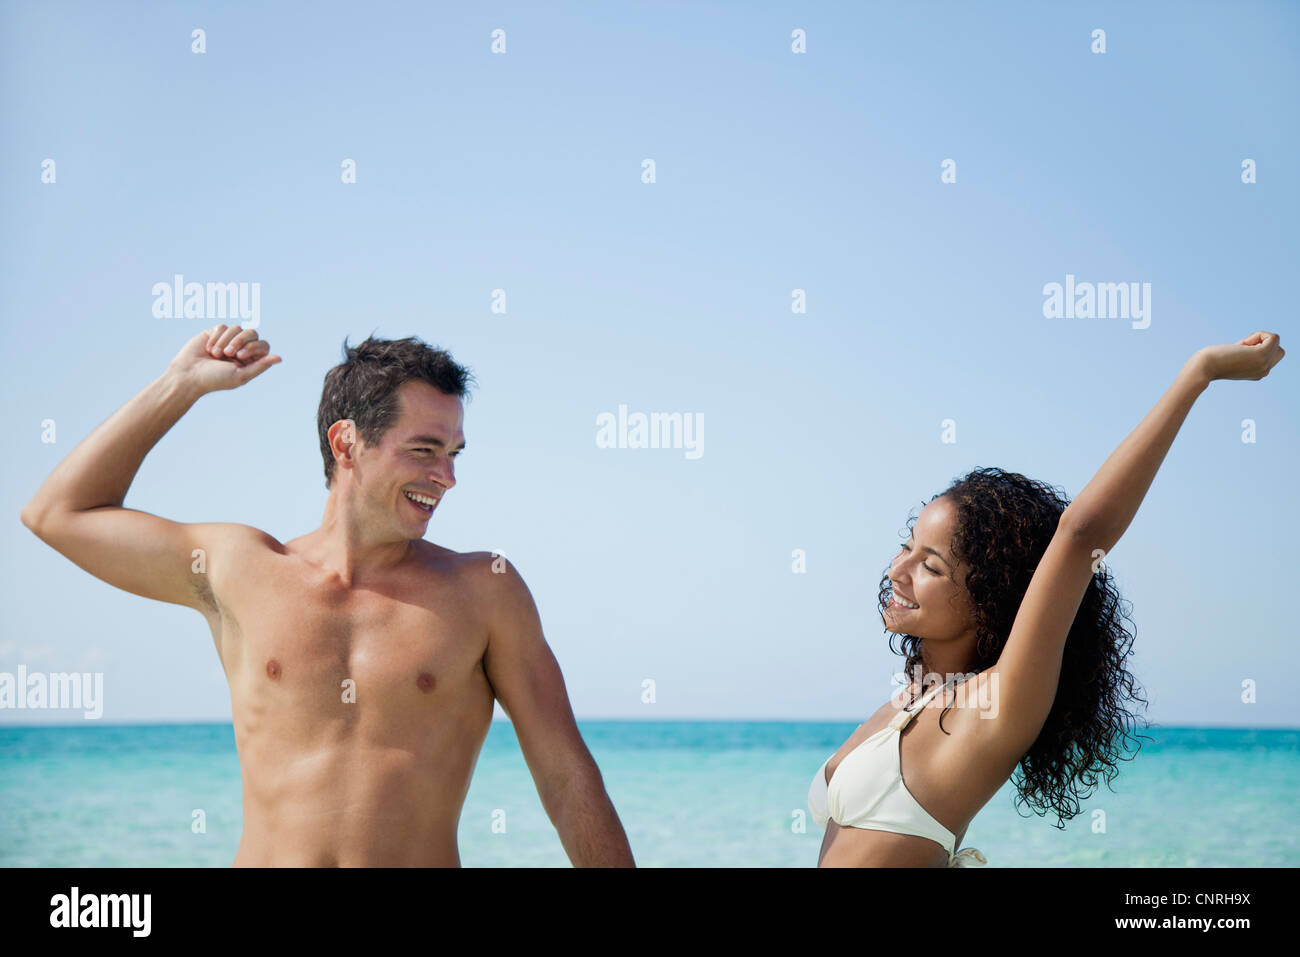 Couple stretching together at the beach - Stock Image